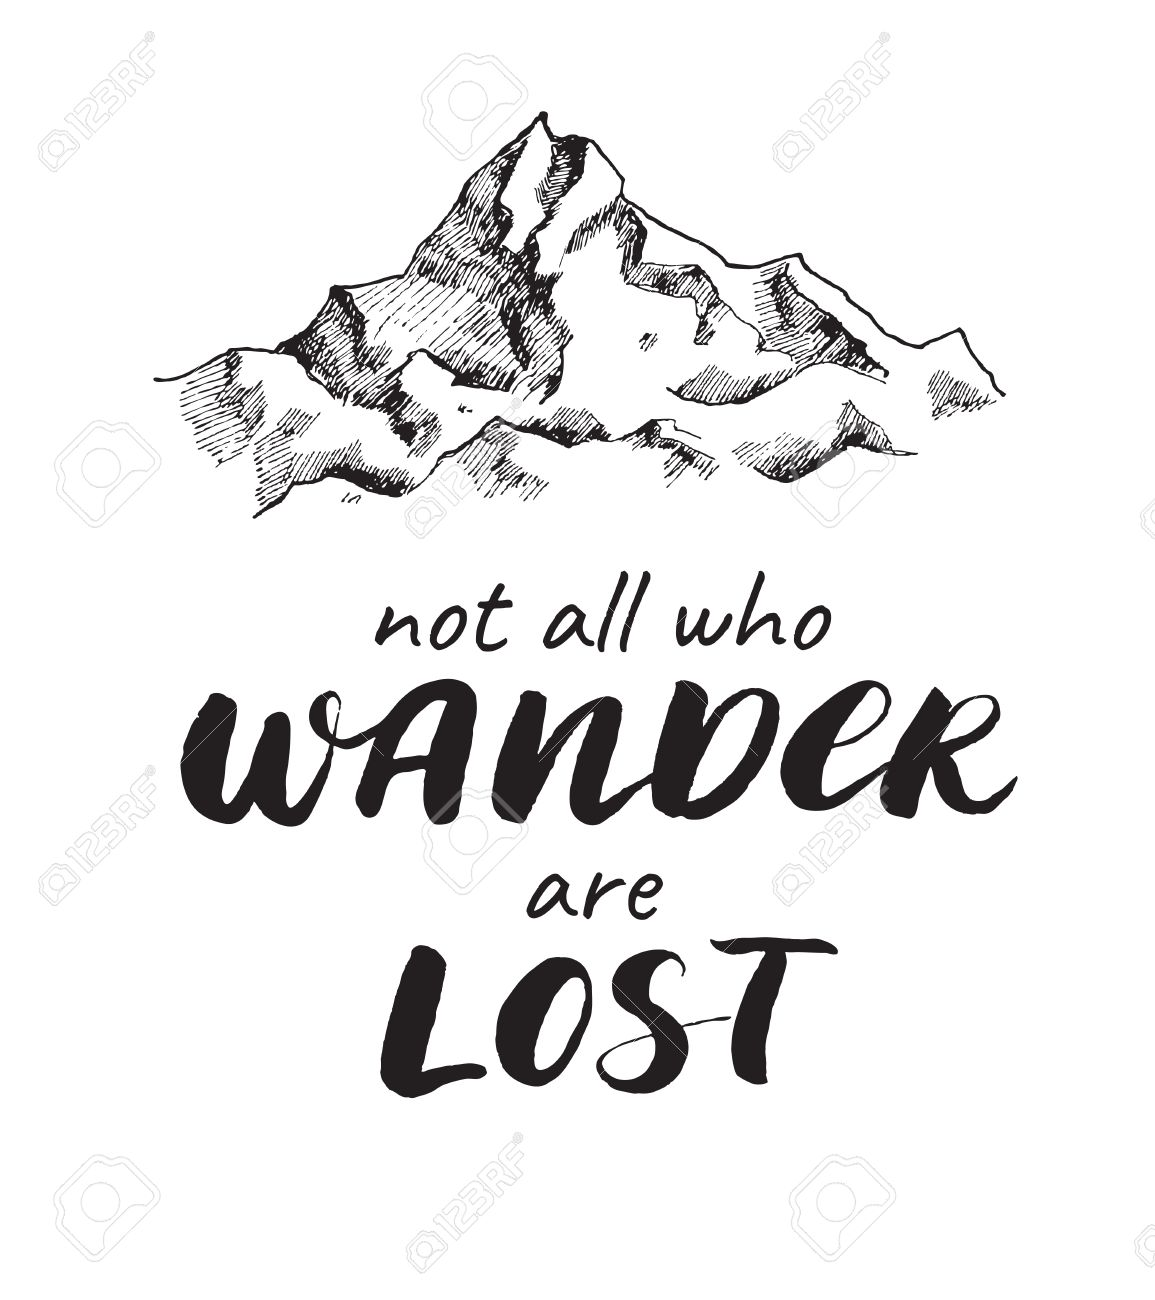 vector vector mountain sketch drawing with handwritten quote not all who wander are lost poster with calligraphy text and graphic design elements